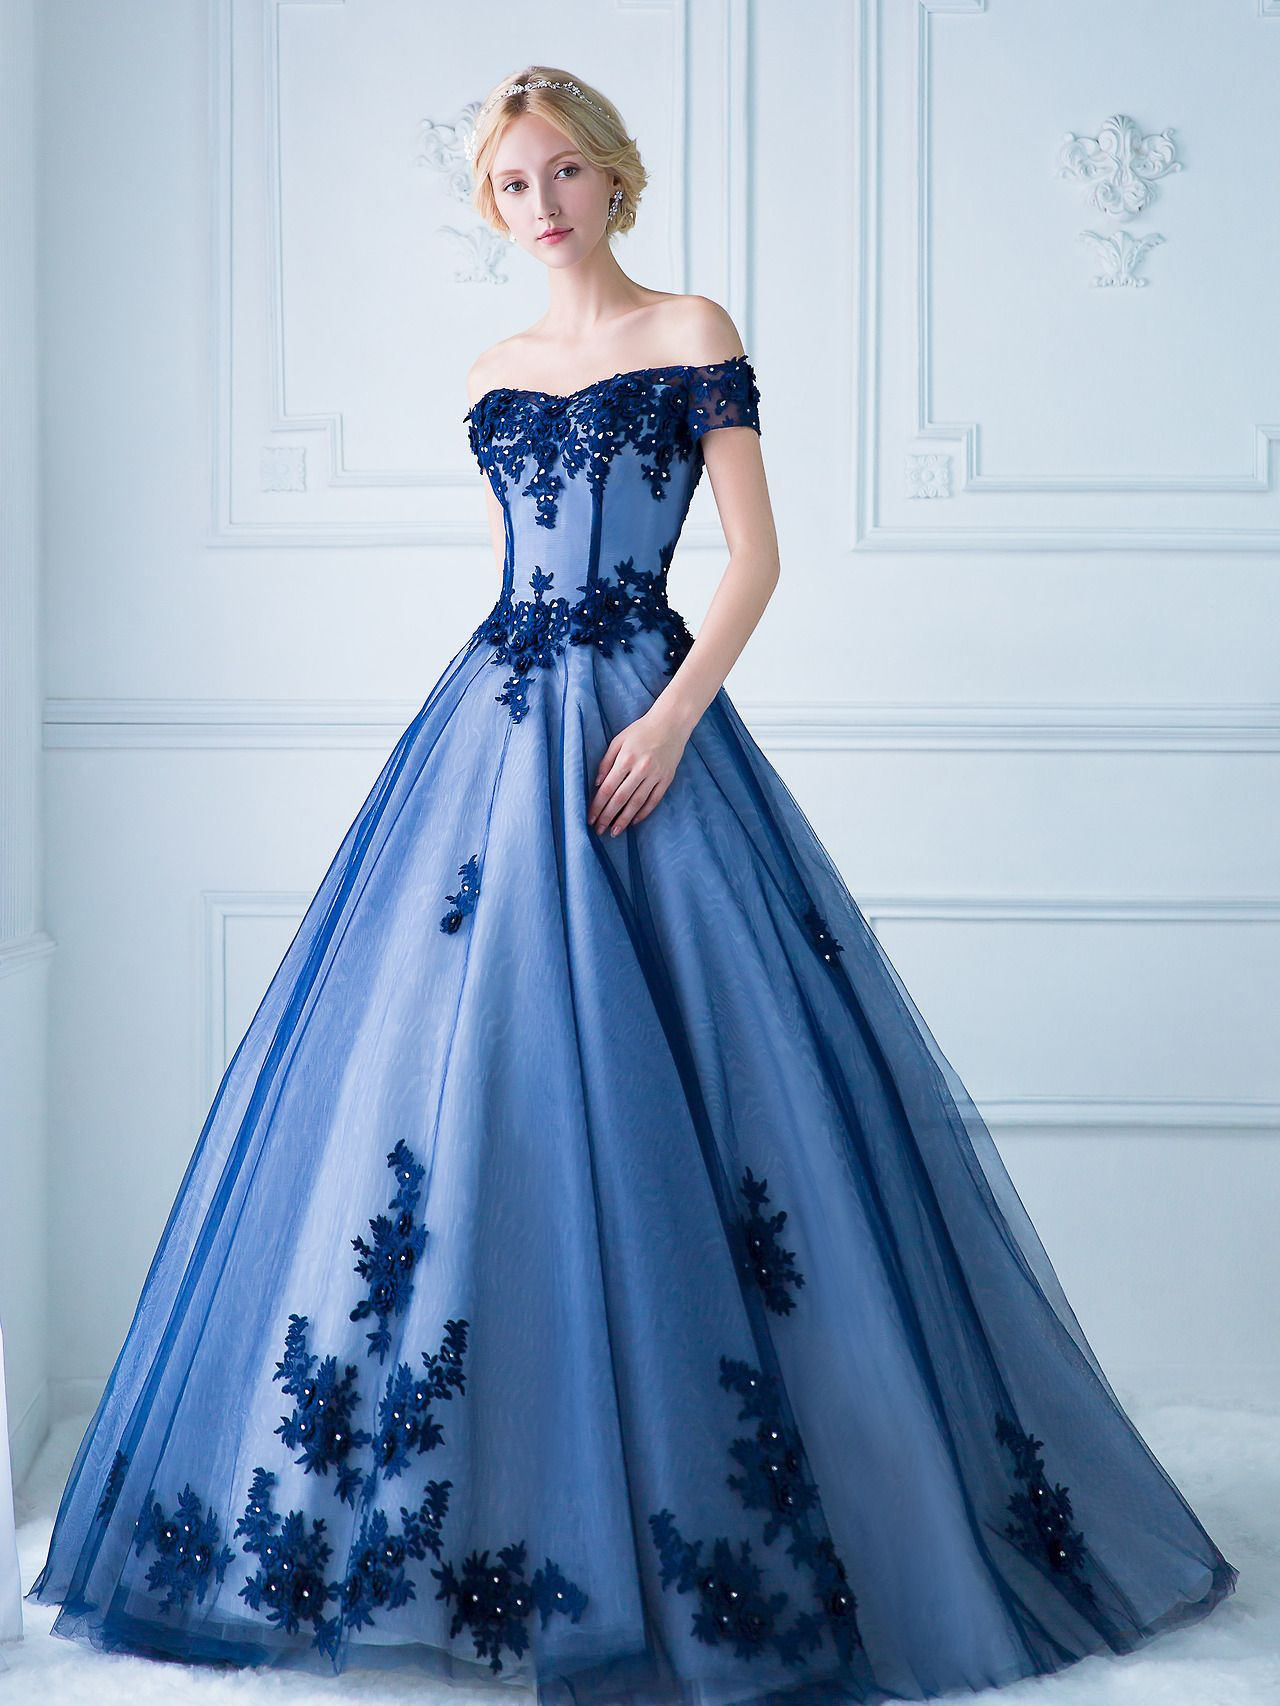 The tulle diaries dresses pinterest